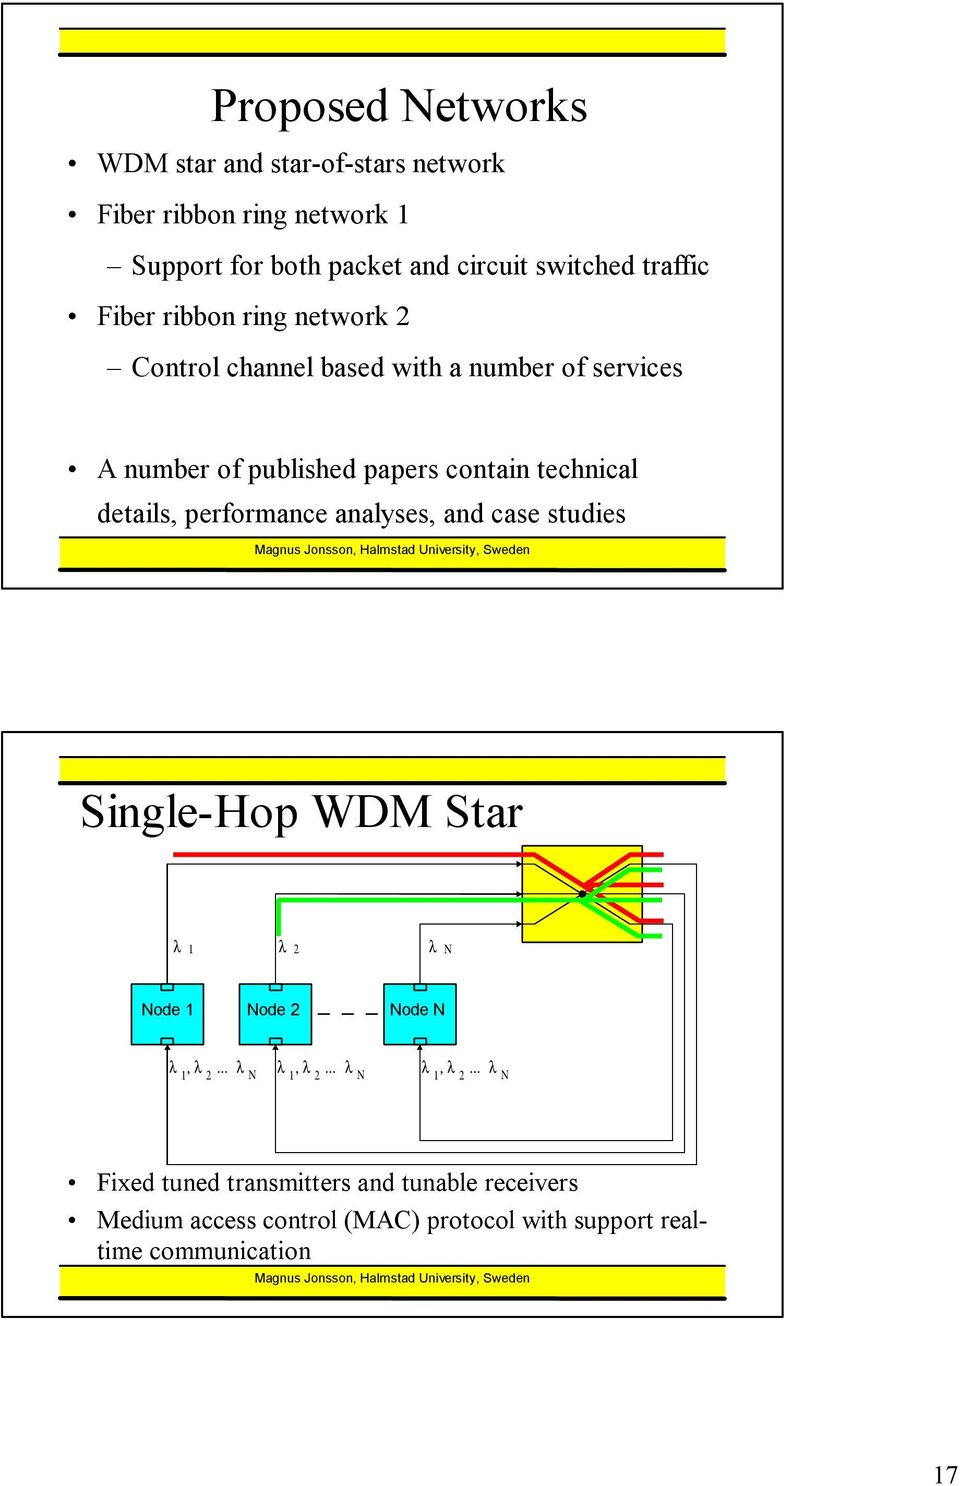 details, performance analyses, and case studies Single-Hop WDM Star λ 1 λ 2 λ Ν Node 1 Node 2 Node N λ 1, λ 2... λ Ν λ 1, λ 2.